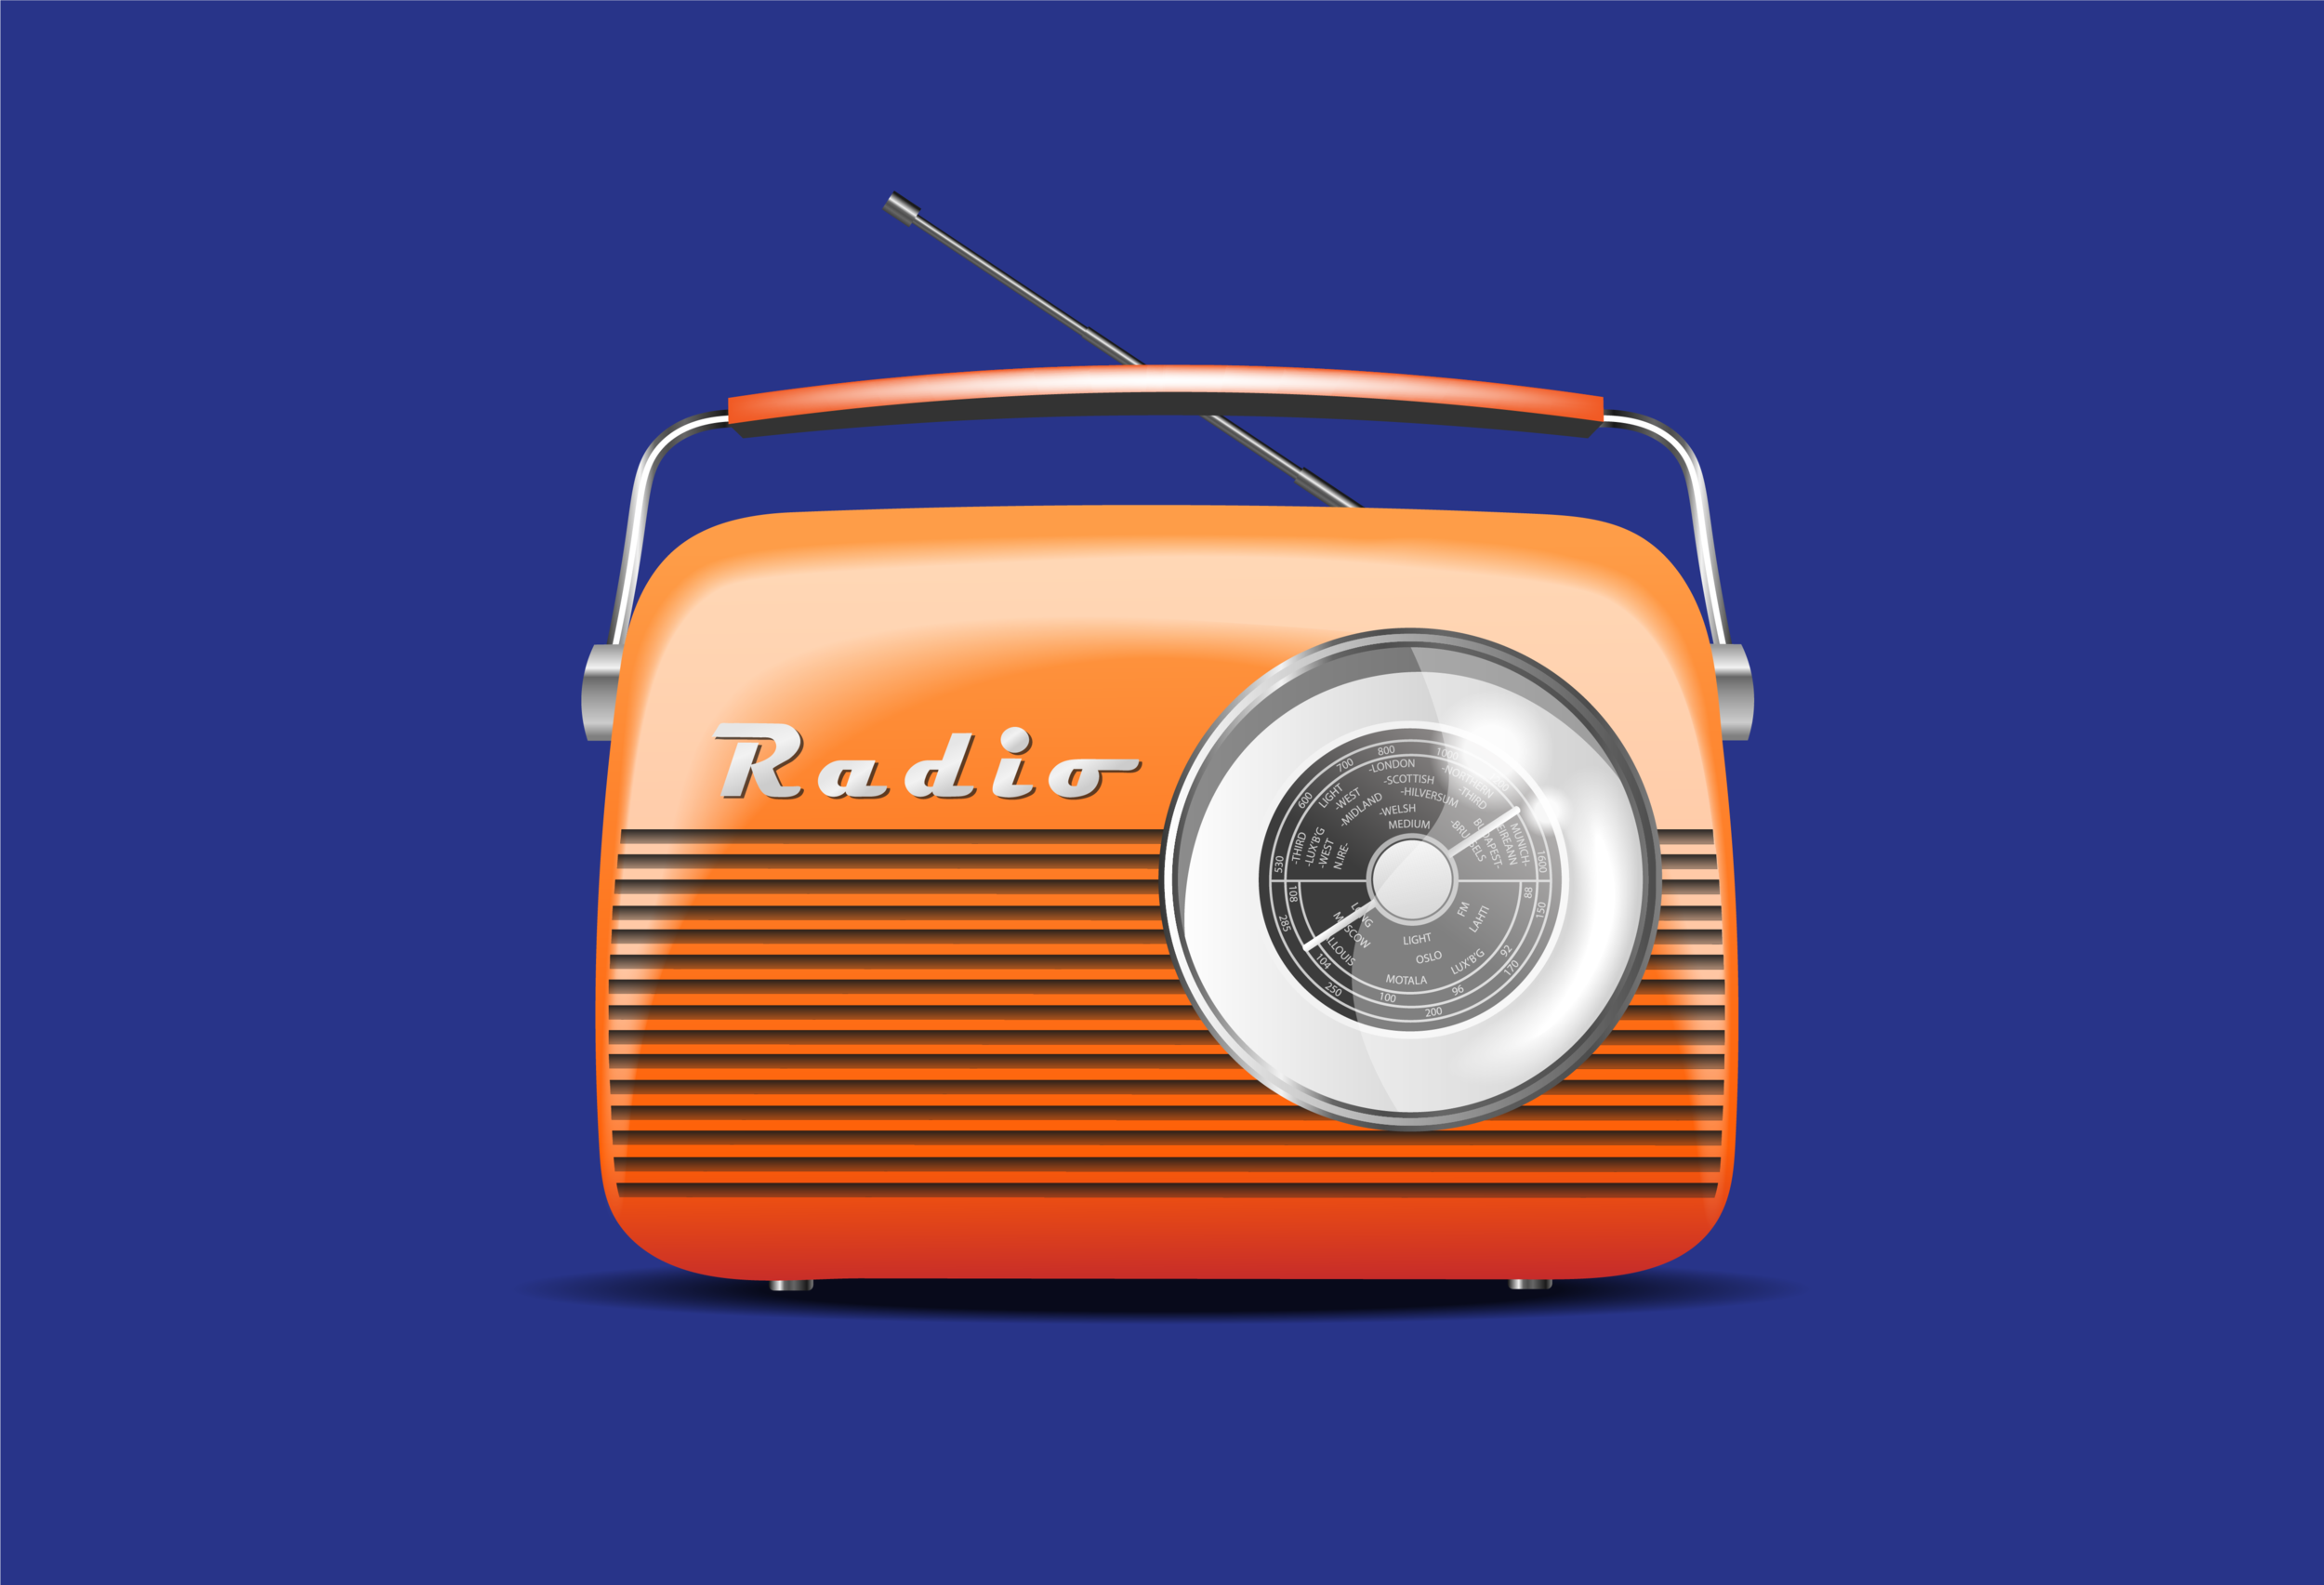 Give us a shout and we'll share our 'writing for radio' expertise